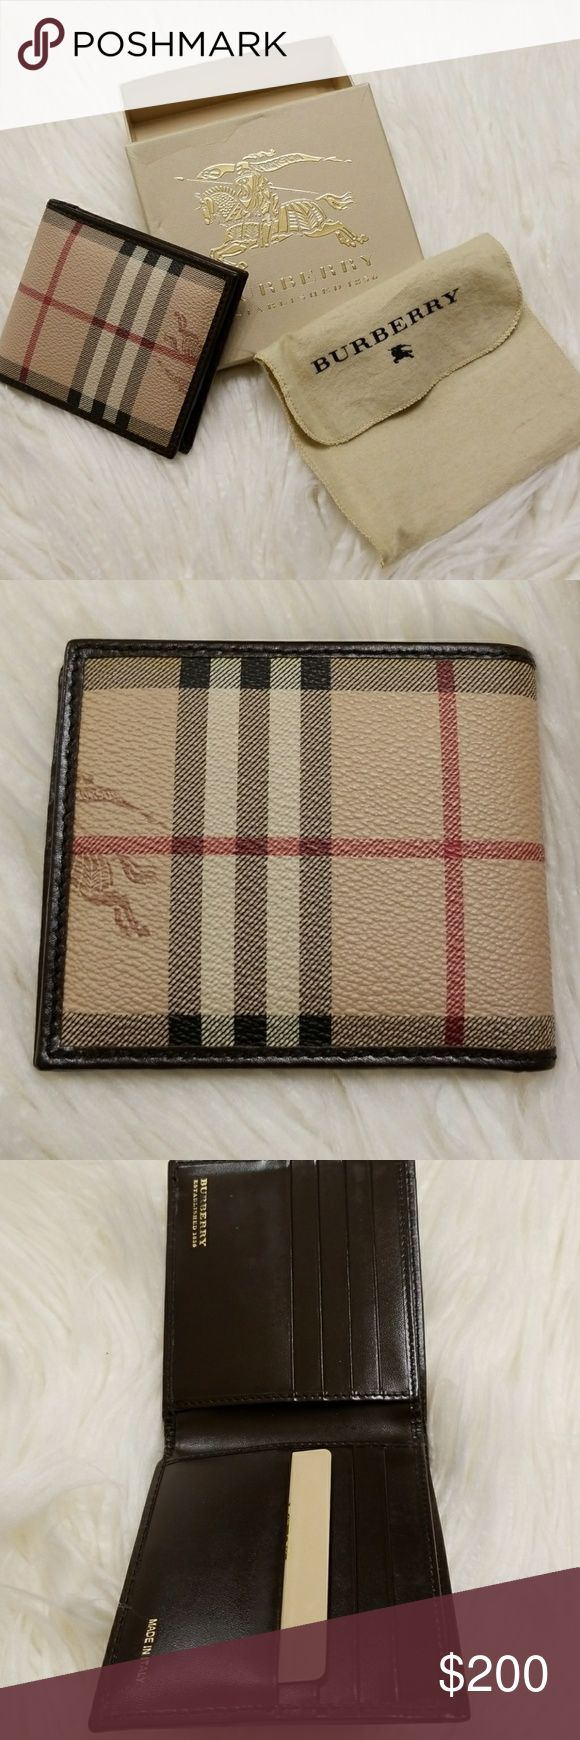 Men's Burberry Wallet Clean And Stylish Designer Wallet With 8+ Slots For Money And Cards Burberry Accessories Key & Card Holders